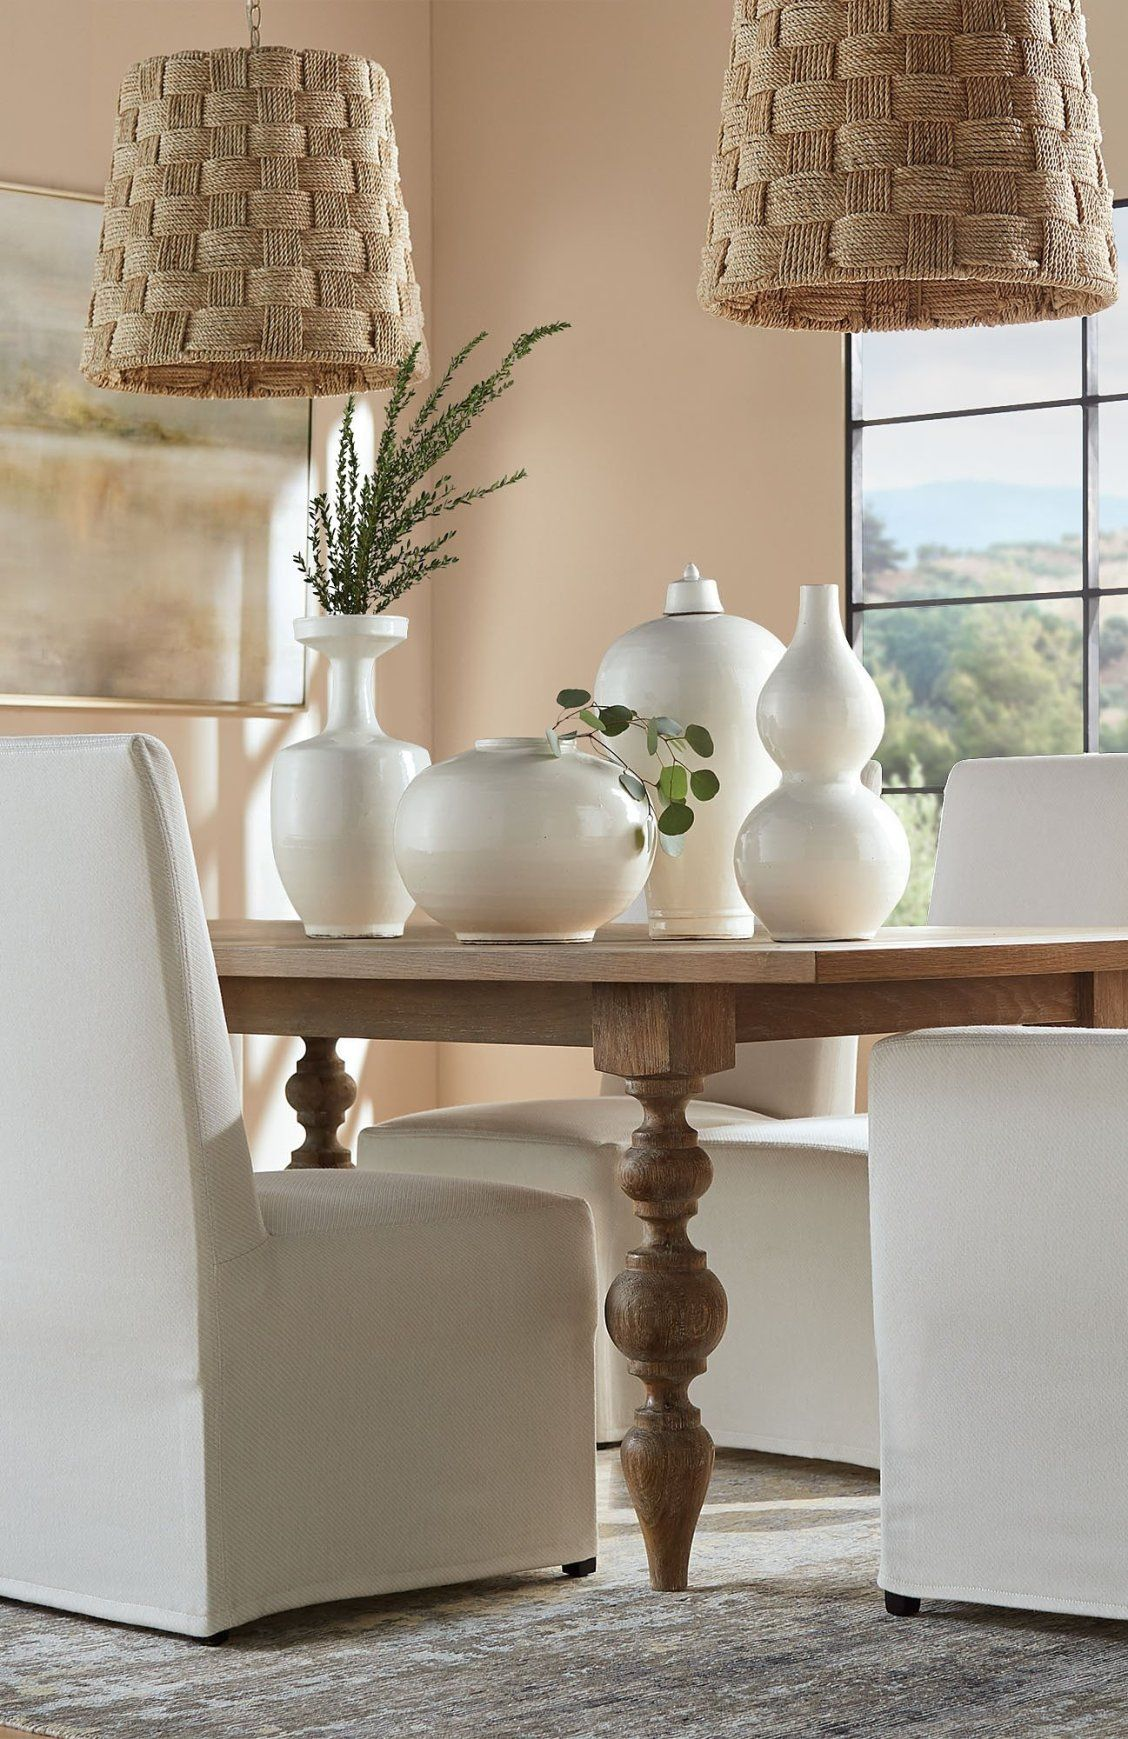 Campbell Dining Table Frontgate Dining Table Decor Indoor Decor